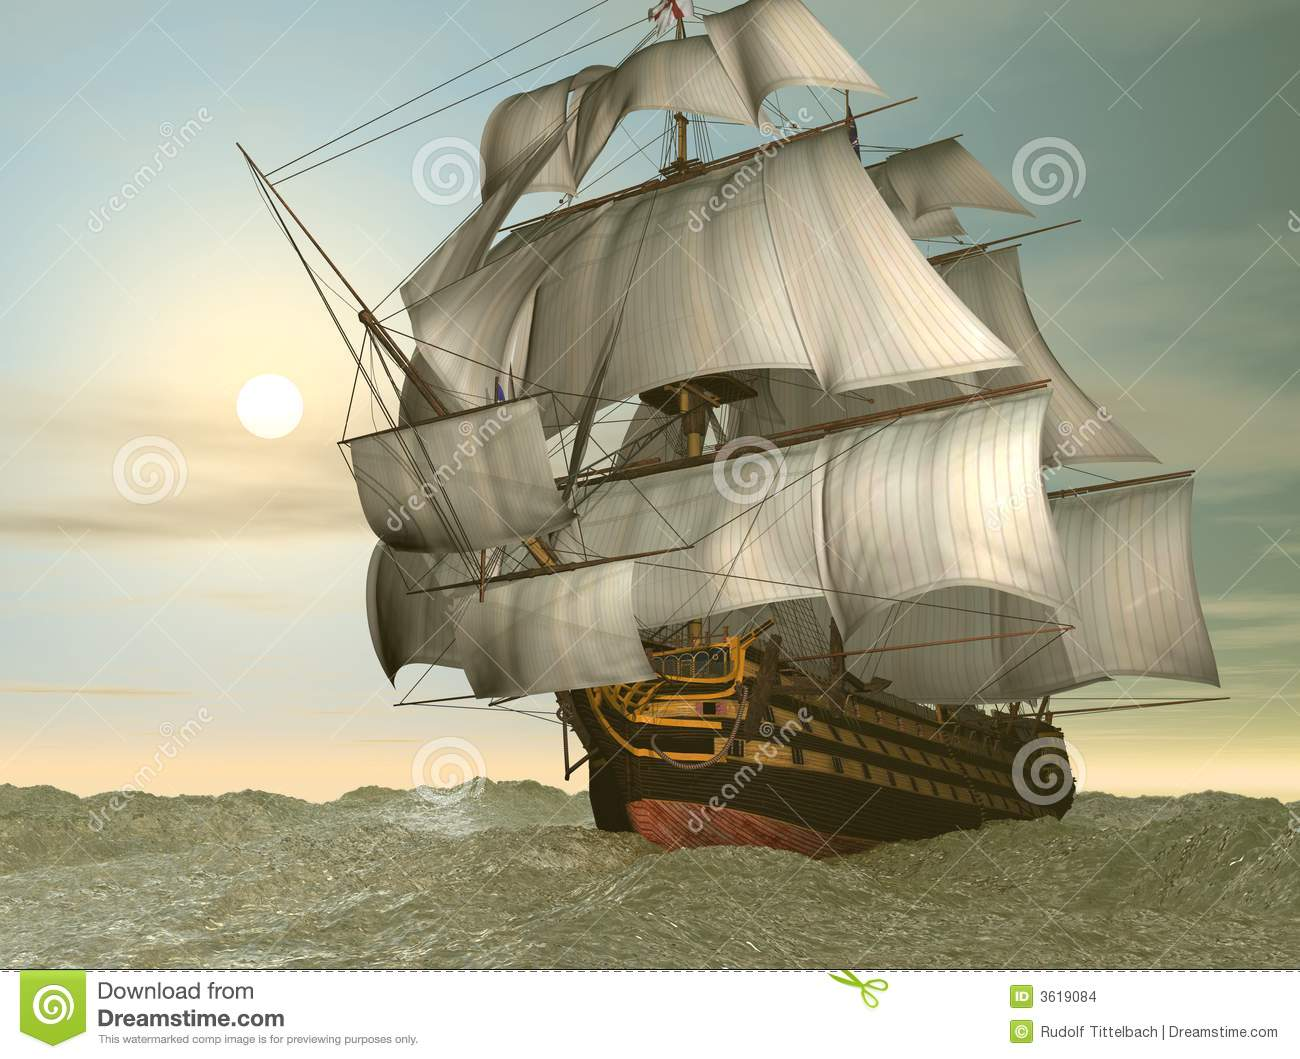 HMS Victory Ship Stock Images - Image: 3619084